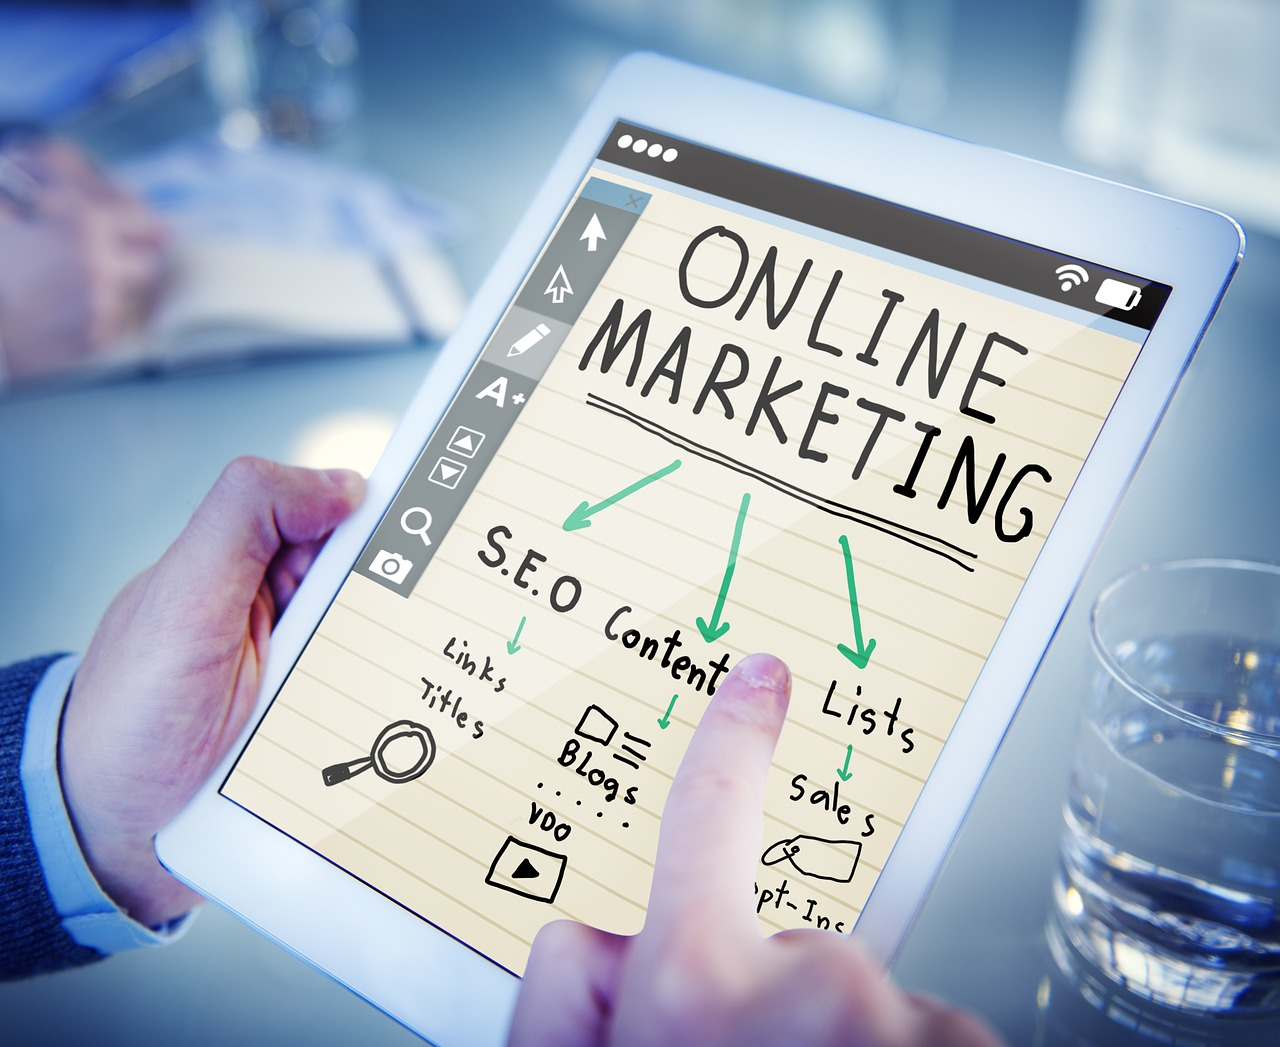 Ecommerce 101 - How To Set Up Your Online Business